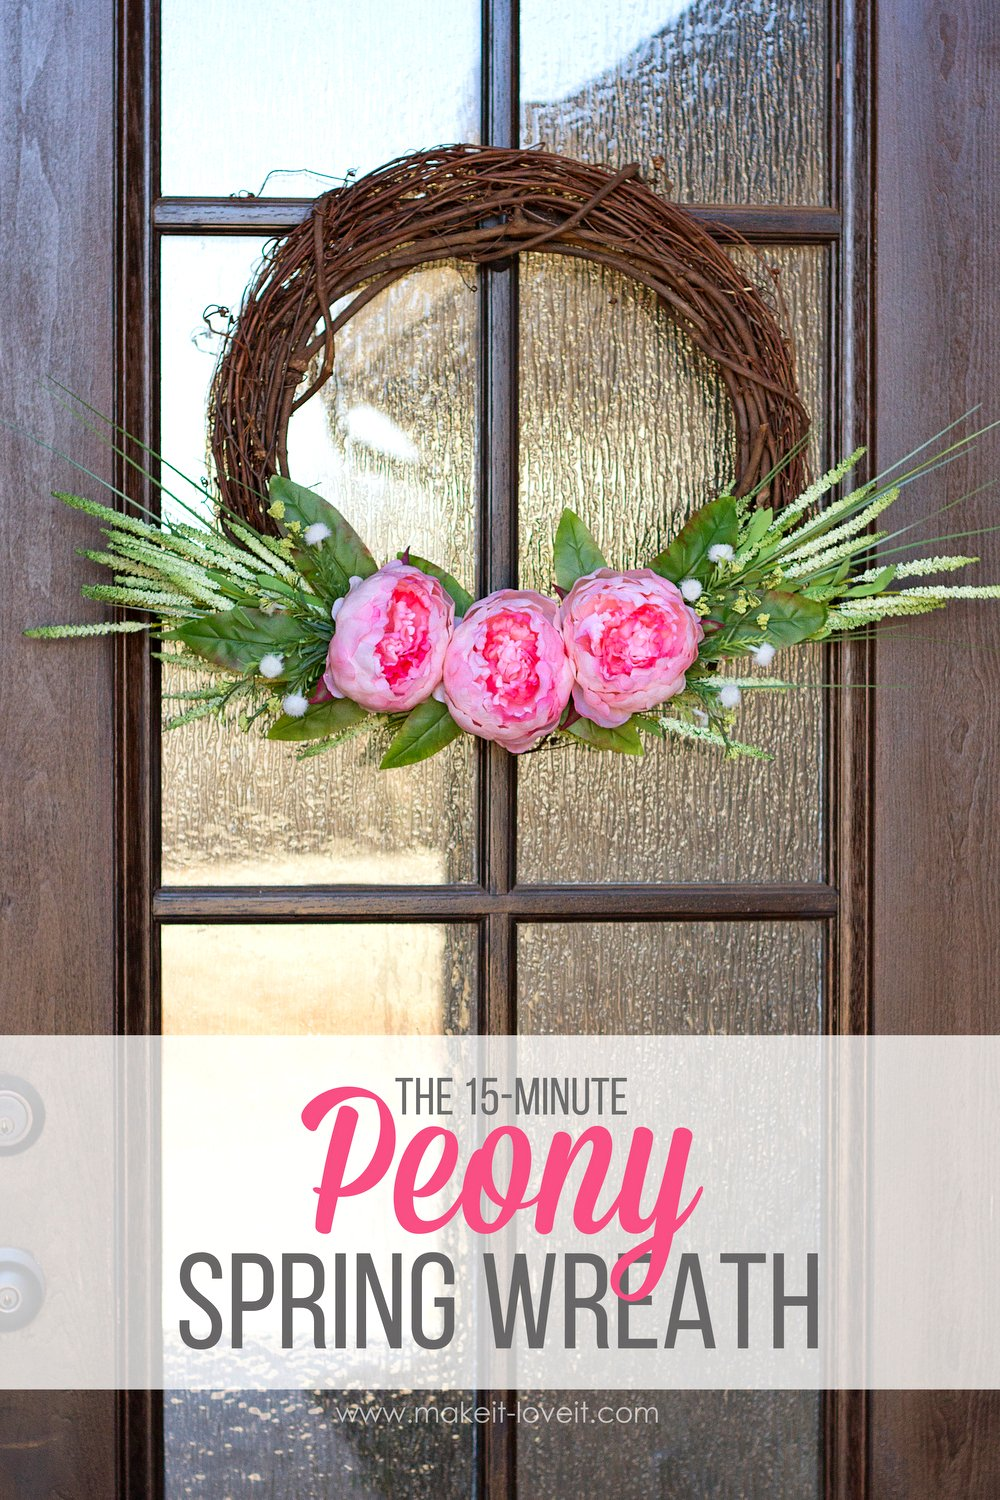 Make a {15-minute} peony spring wreath